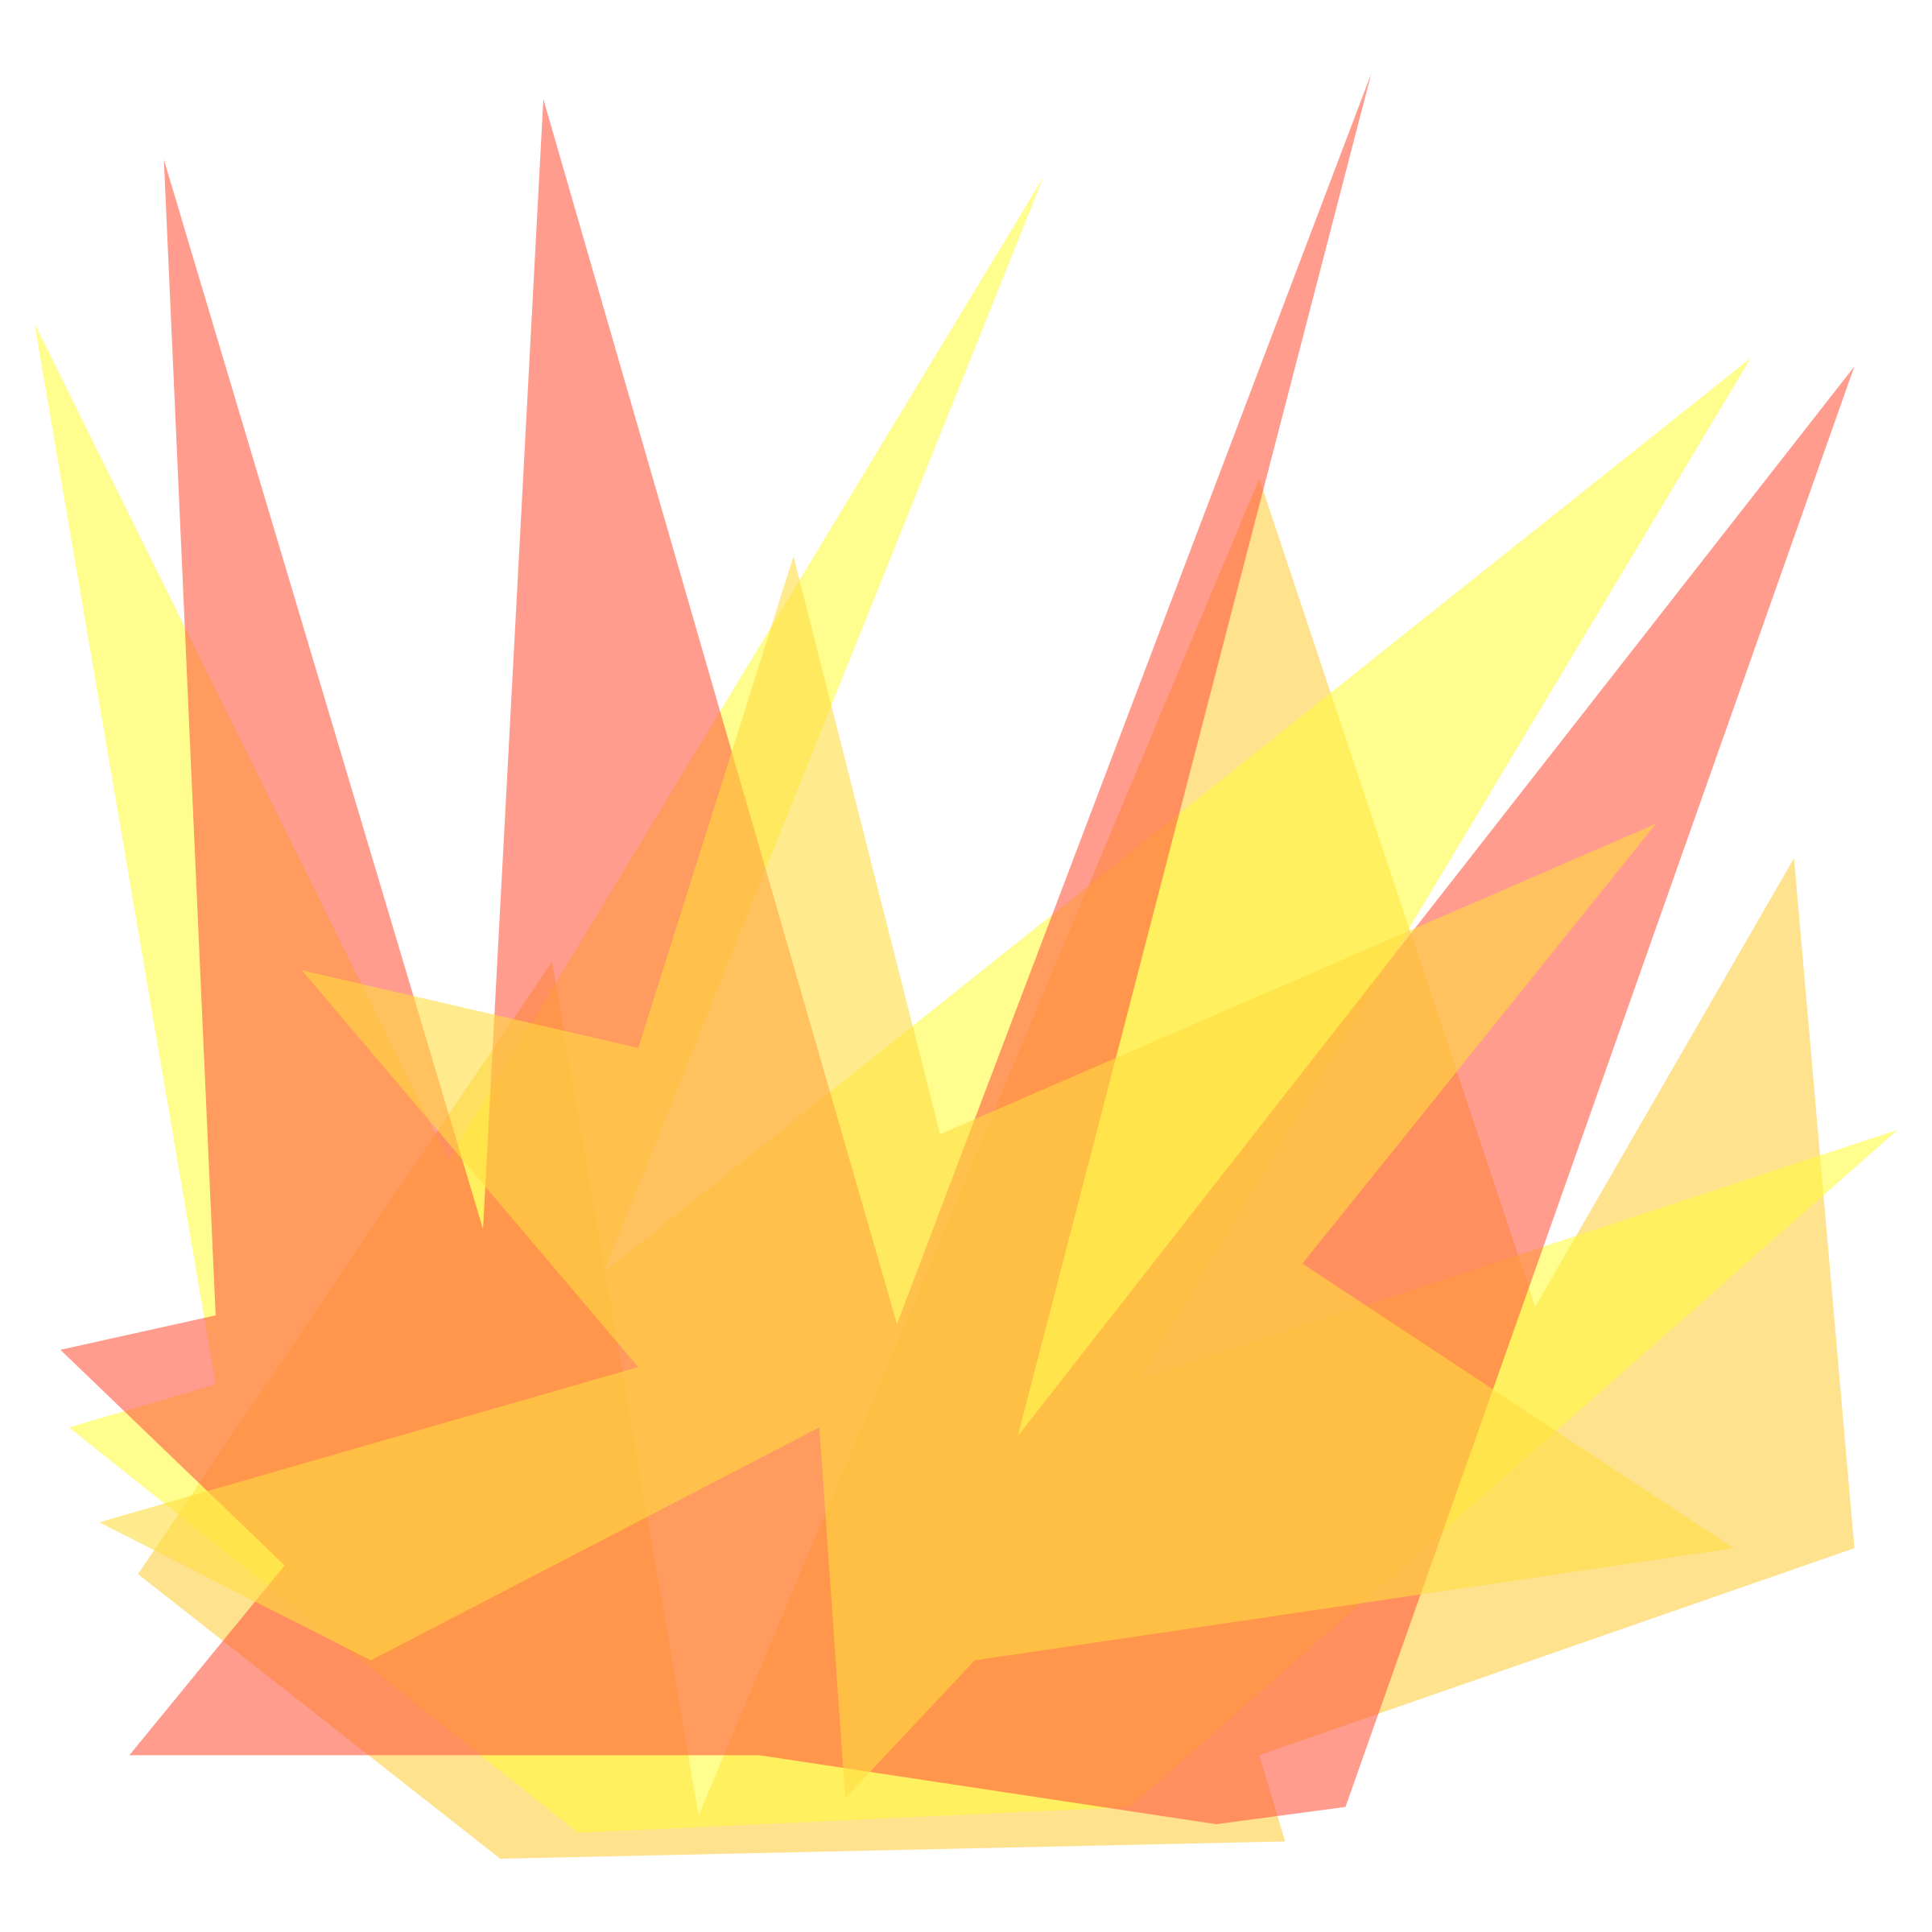 svg library library Simple cartoon explosion big. Boom clipart explosive